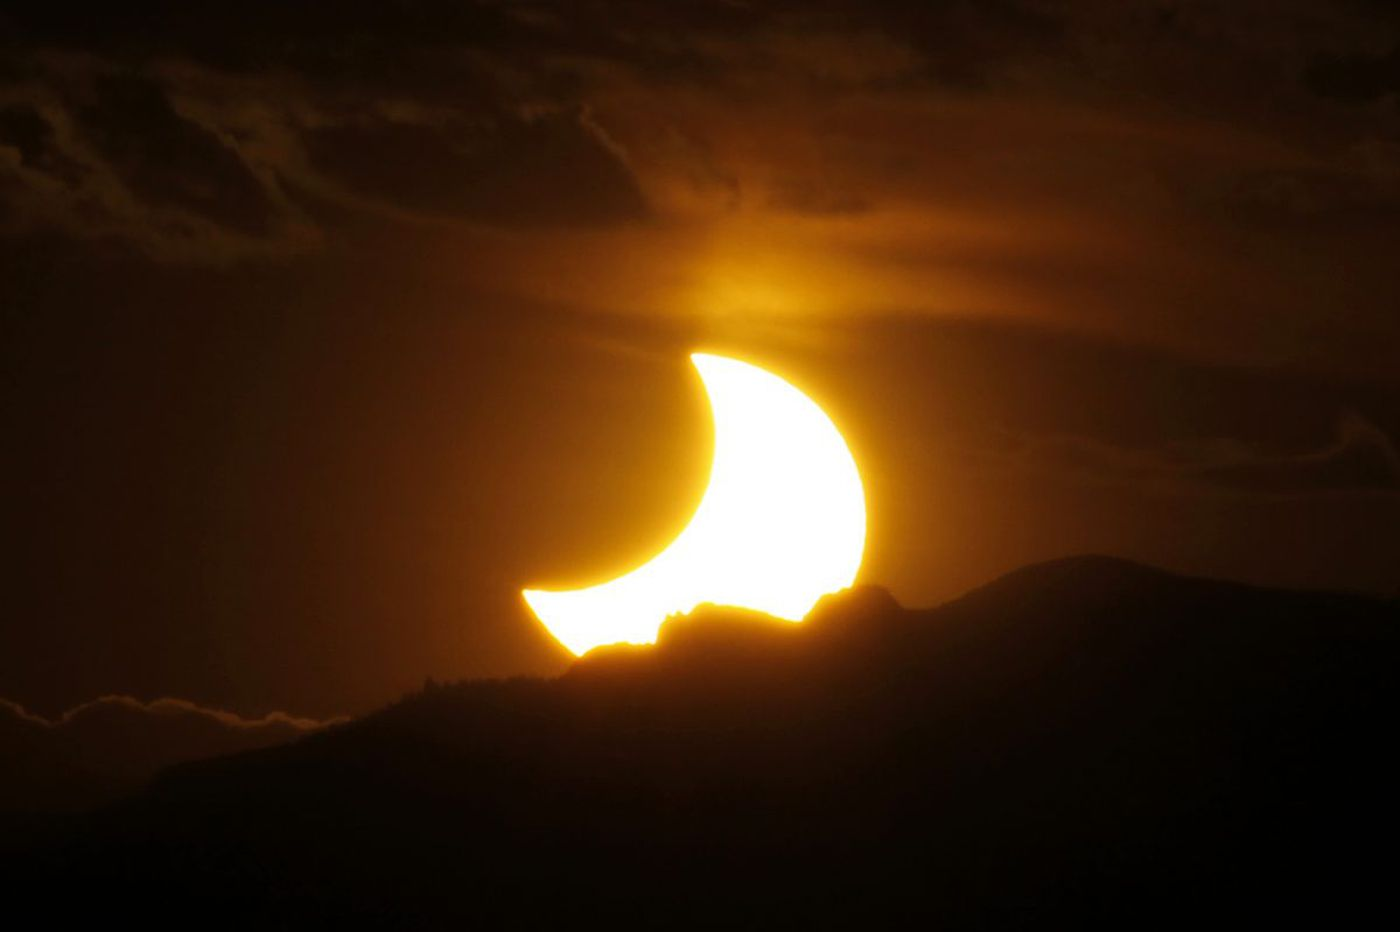 Clouds could obscure solar eclipse in Philly area